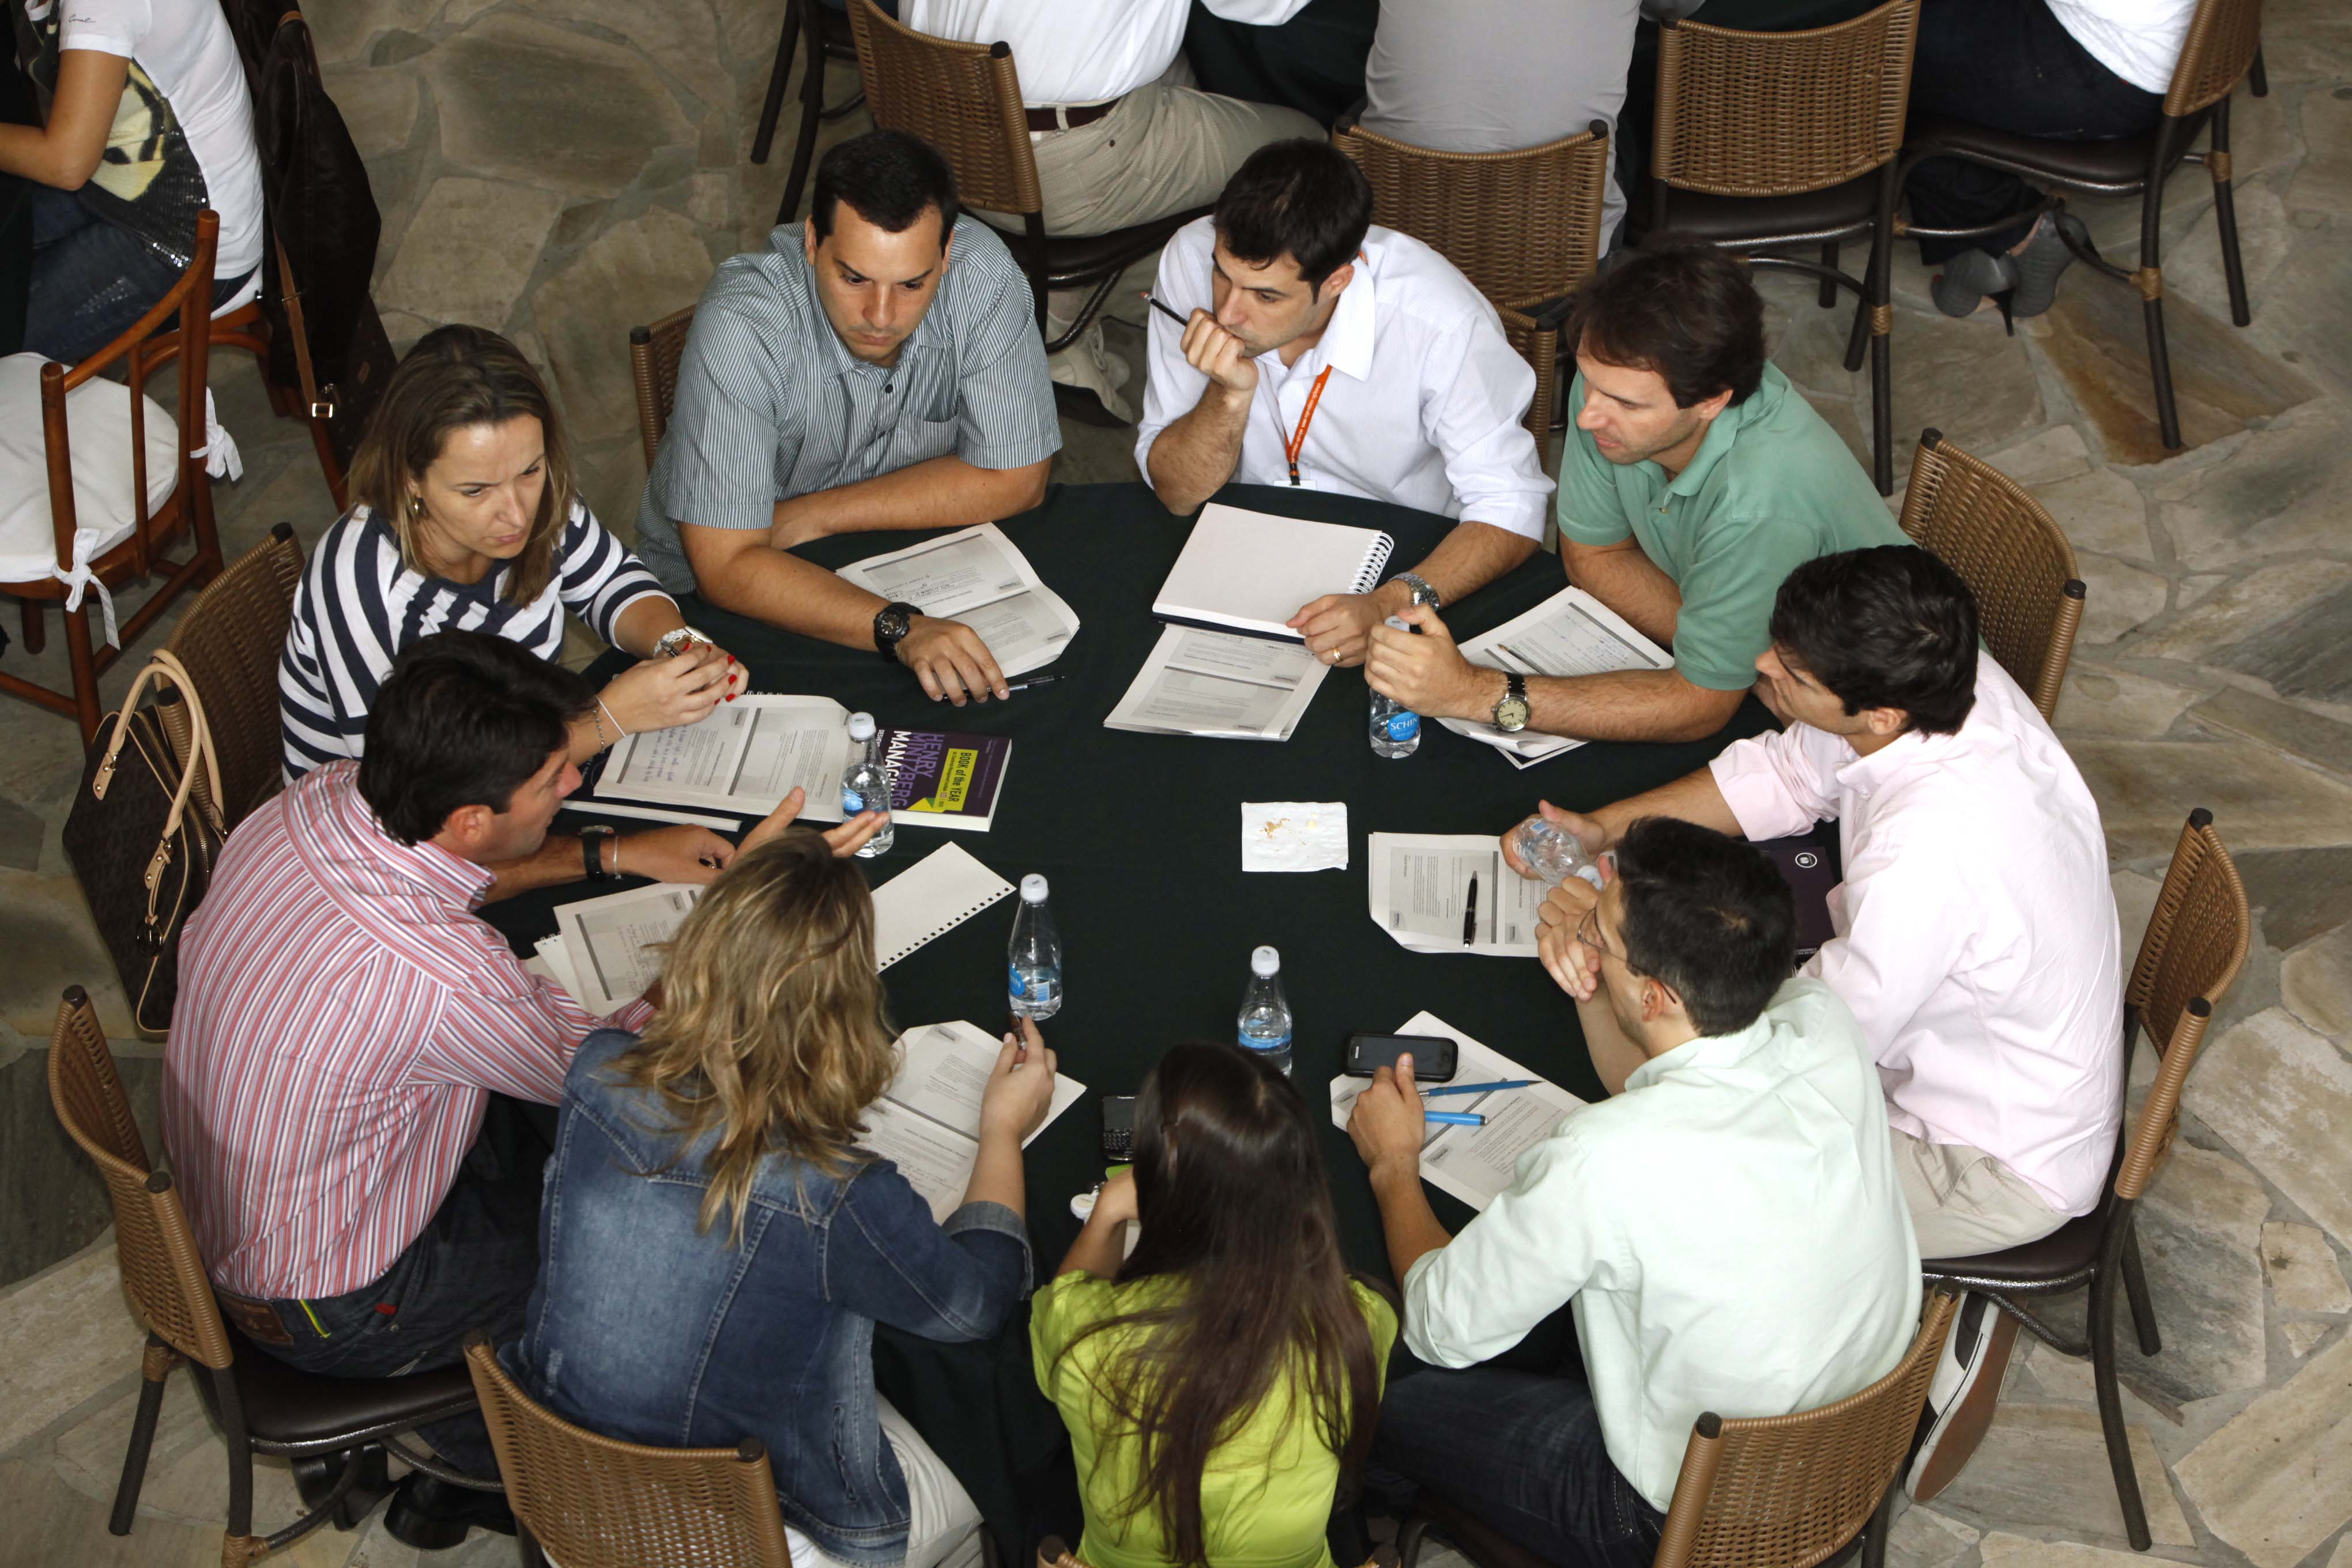 Peer Coaching Groups For Your Team Offsite Of Course